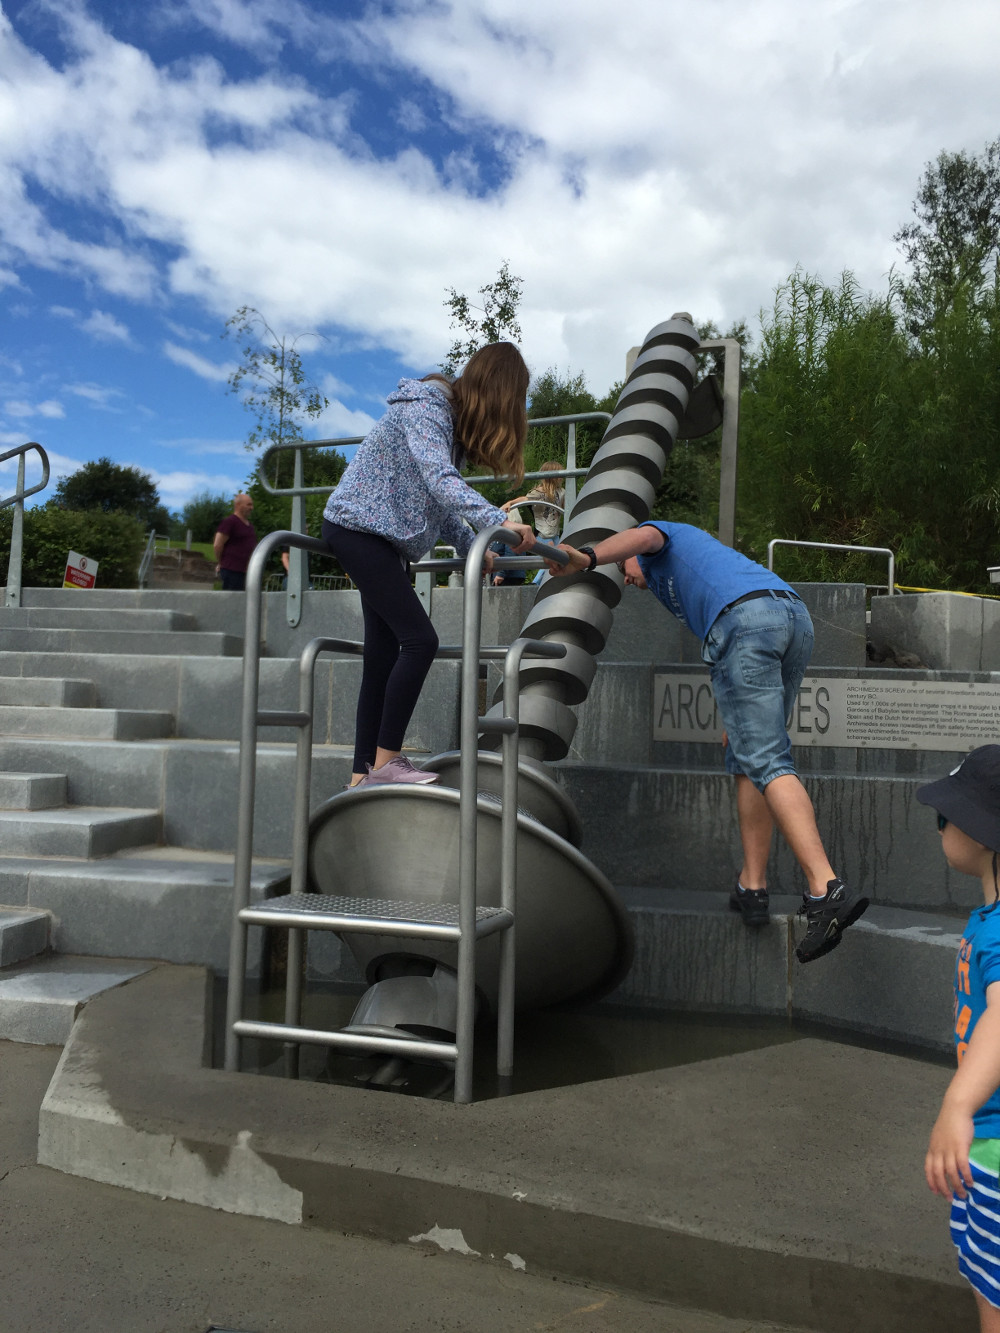 The Archimedes' screw is just one of the attractions at the Falkirk Wheel